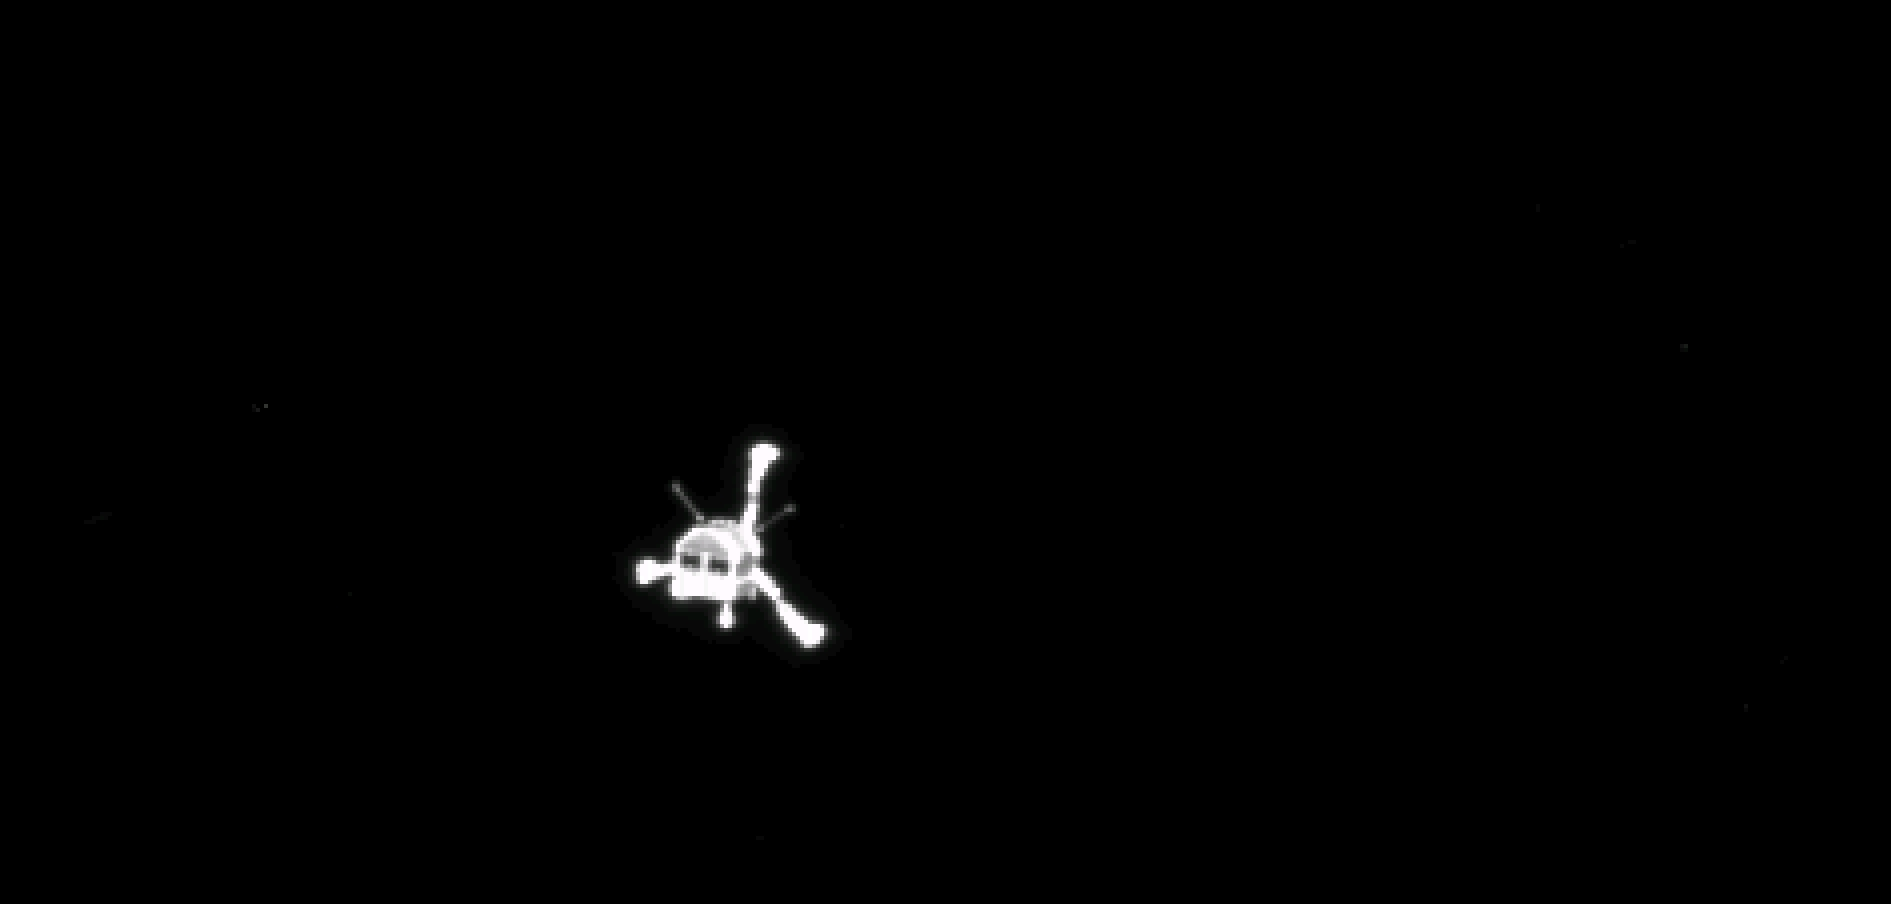 Rosetta's lander, Philae, is imaged shortly following its deployment in November 2014. Philae became the first-ever spacecraft to soft-land upon a comet's surface.